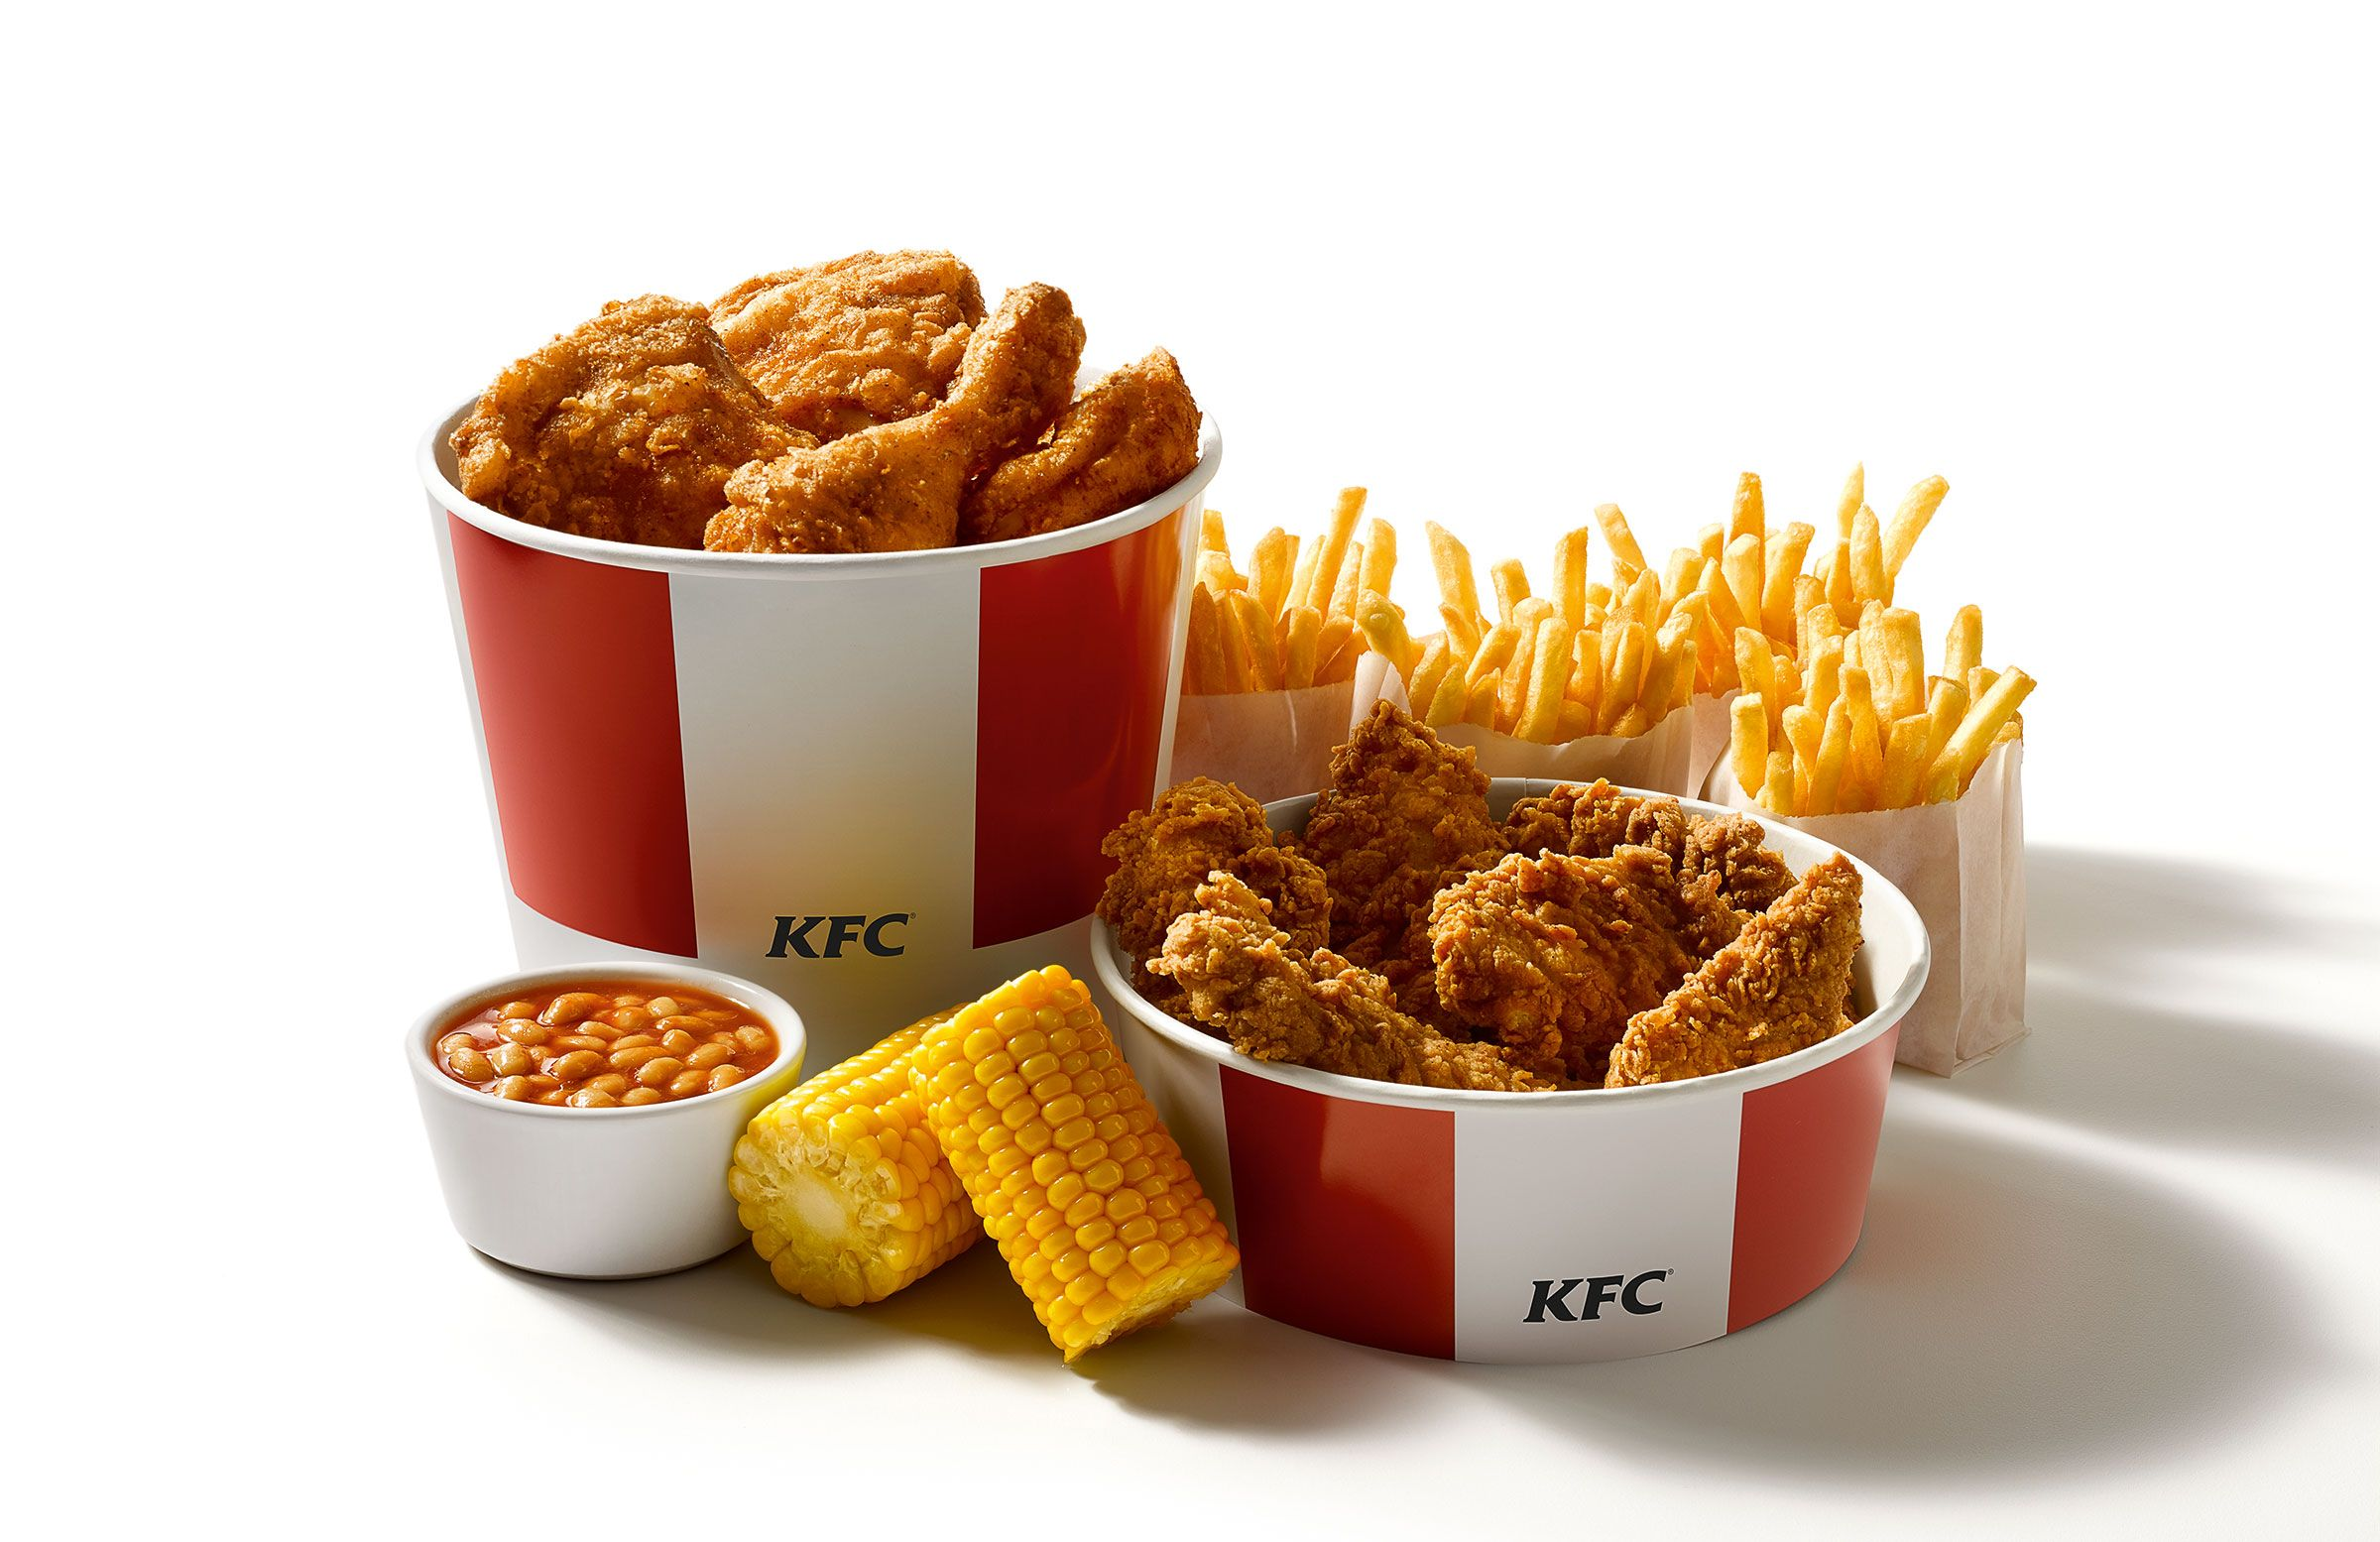 Kfc Bucket Funny: Our Double Bucket Meal Now With Added Zing. #KFC